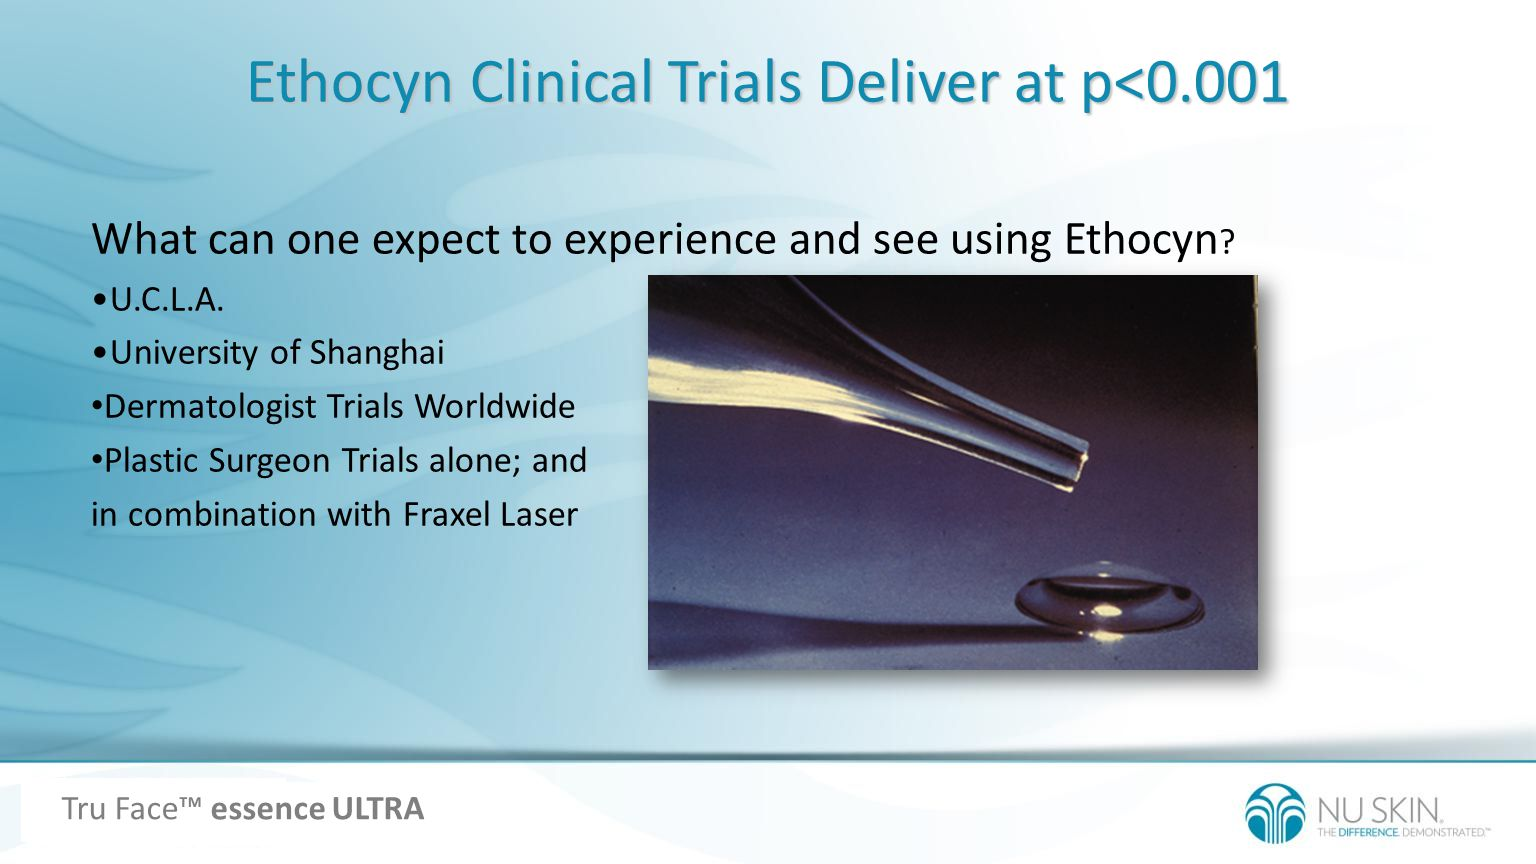 Ethocyn Clinical Trials Deliver at p<0.001